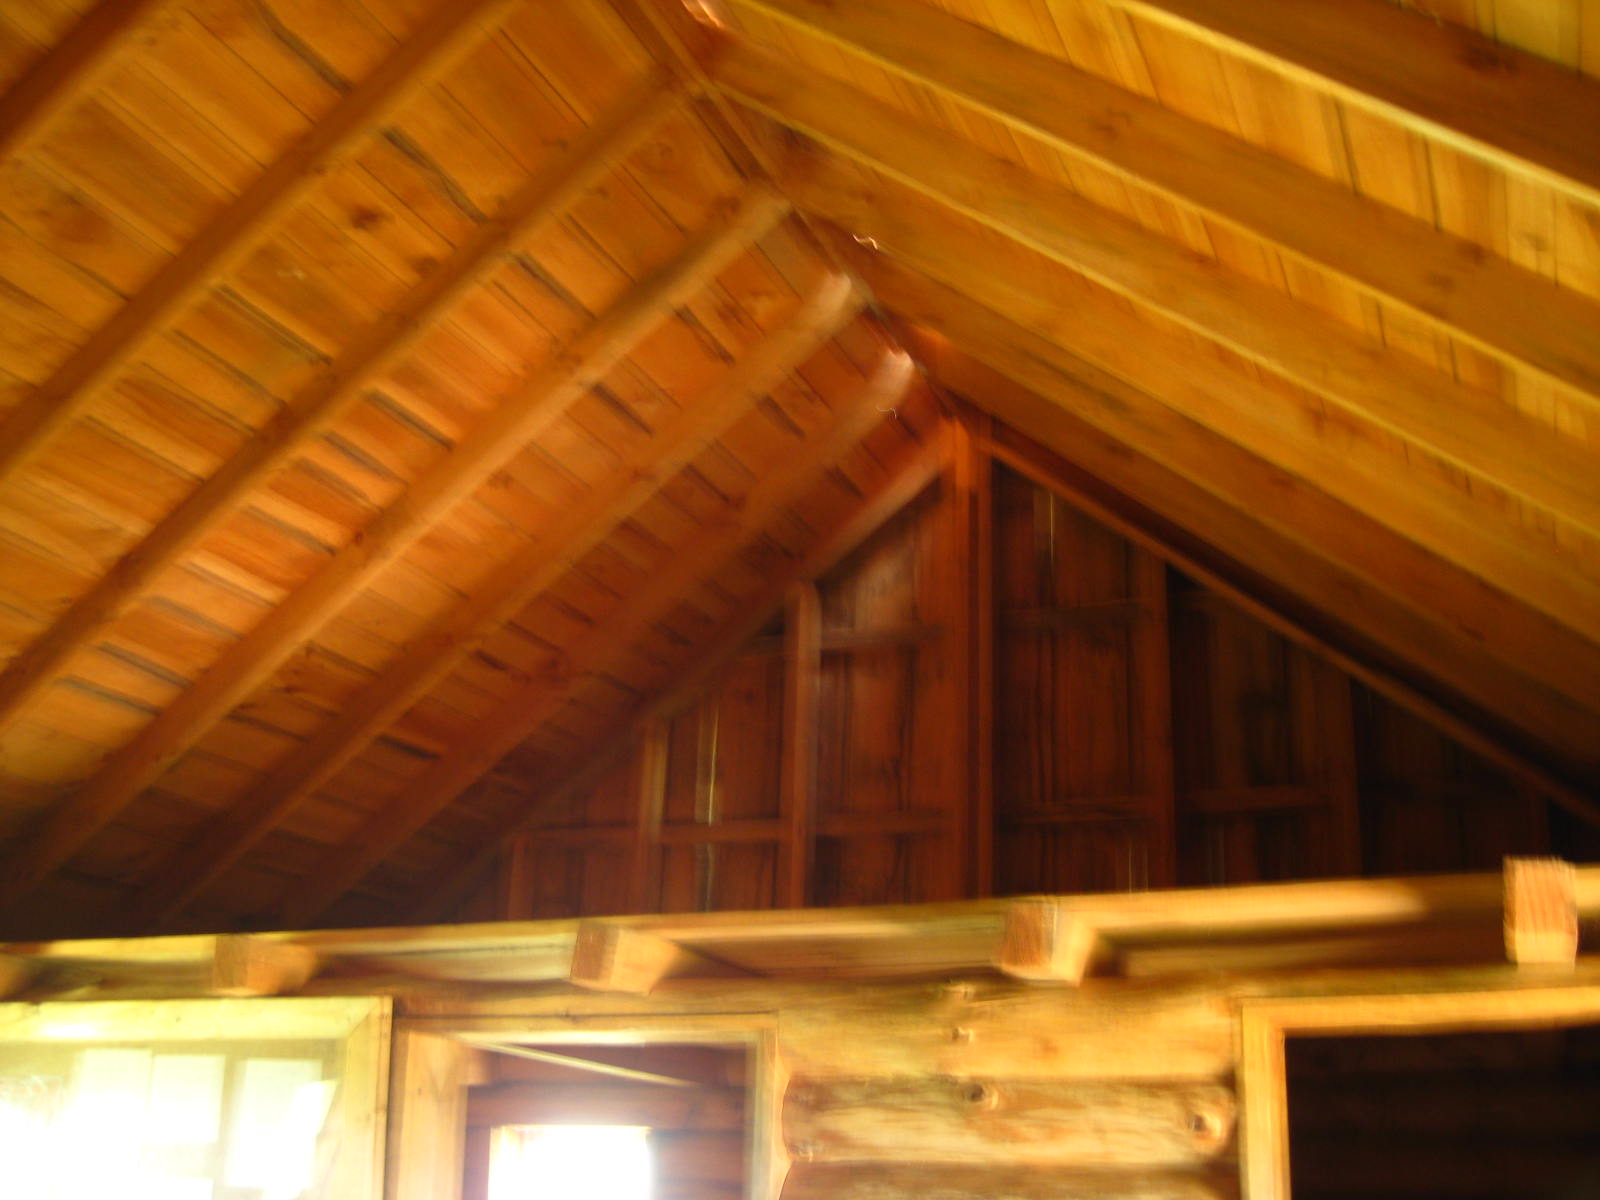 The interior. This is the loft where the Ingalls girls slept.